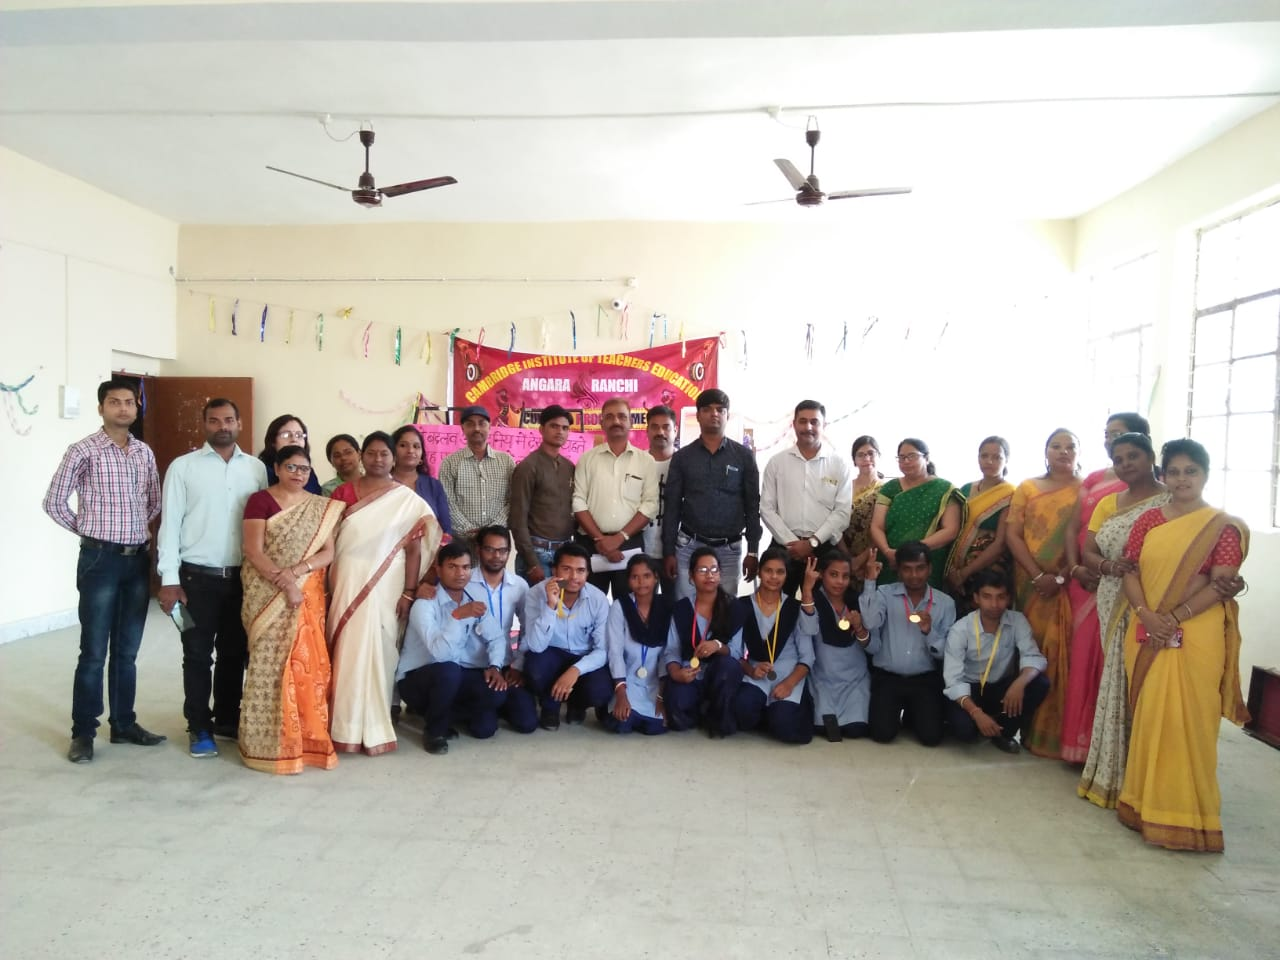 <p>The 150th birth anniversary was celebrated at Cambridge Institute of Teachers Education at Angara, in which students of D.EL.ED and B.Ed course participated in street play, dance,…